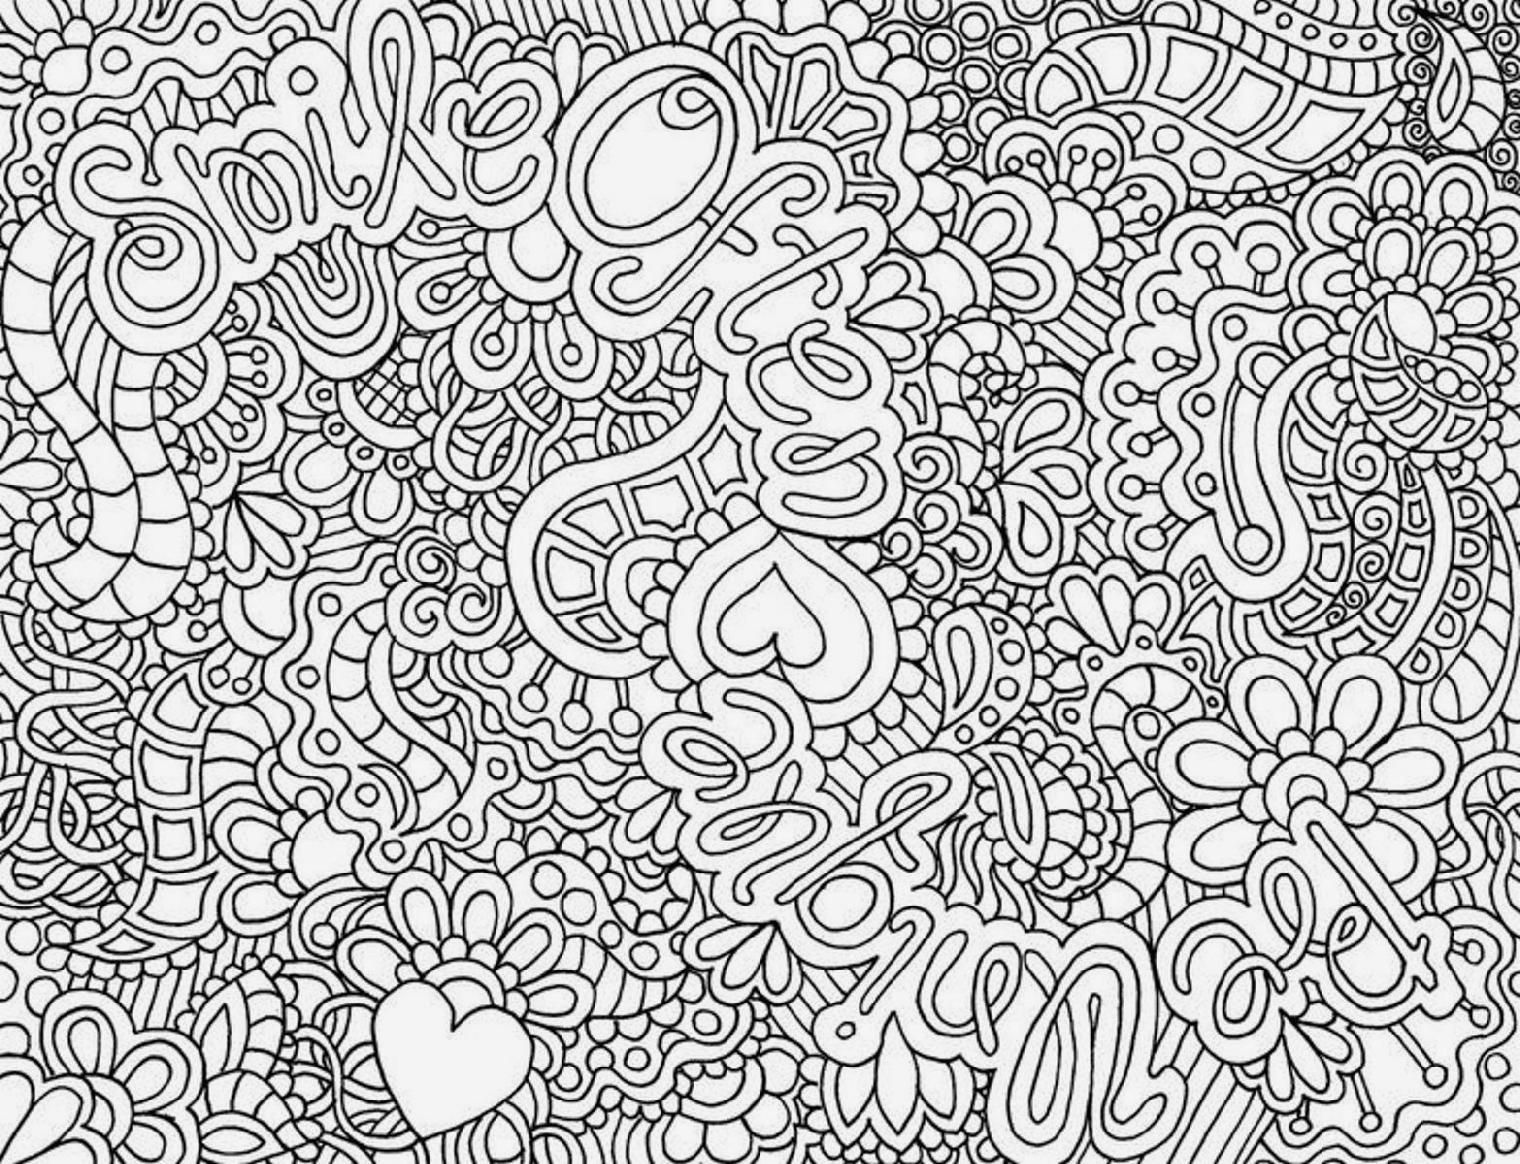 Free printable coloring pages for grown ups - Coloring Pages Difficult But Fun Coloring Pages Free And Printable Coloring Sheets 0 Coloring Pages For Adults